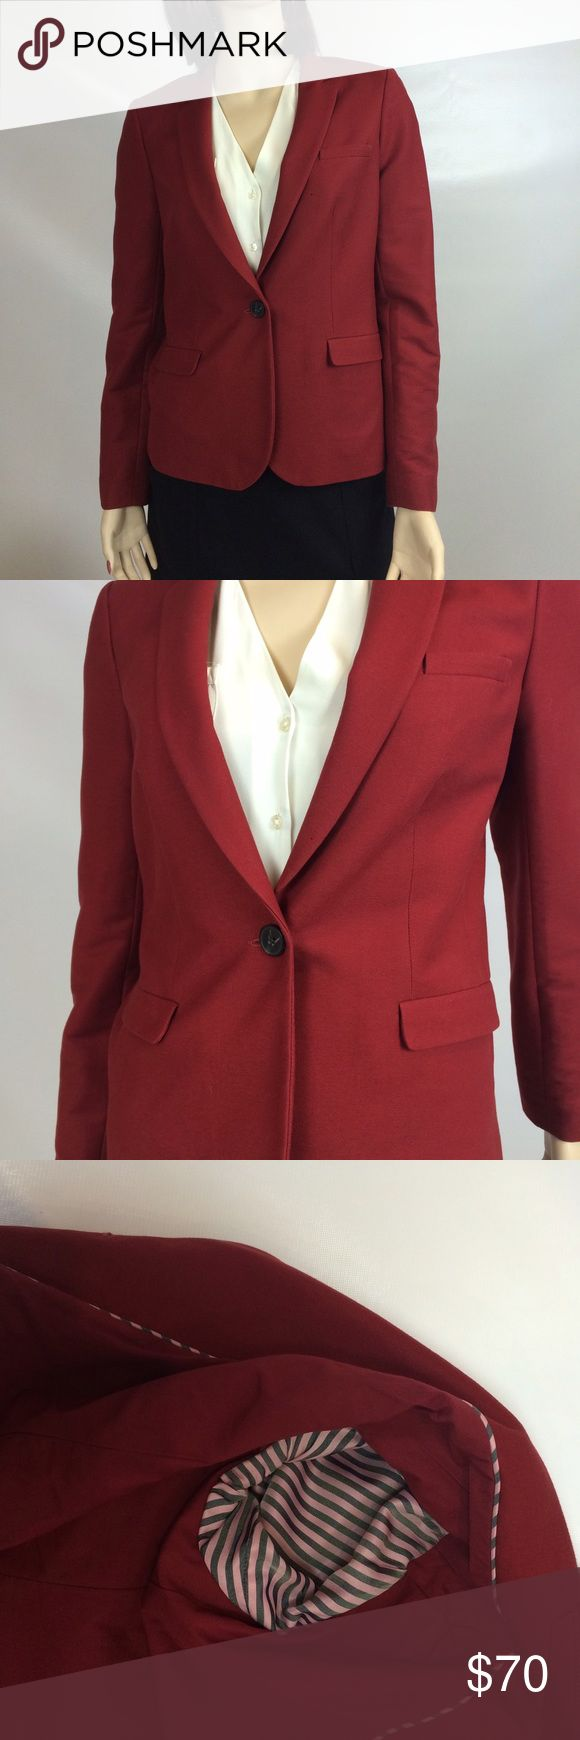 SIZE 6 (UK 10) JACK WILLS NEVER WORN RED BLAZER RED blazer. Perfect for a cute business casual look, can easily wear with a nice button-down/blouse, or skirt/pants. From JACK WILLS. NEVER WORN. NO MARKS, STAINS, OR RIPS. Size 6 (UK 10). Has THREE extra buttons. Willing to negotiate prices 💰💰💰 SMOKE FREE HOME ❤️ Jack Wills Jackets & Coats Blazers